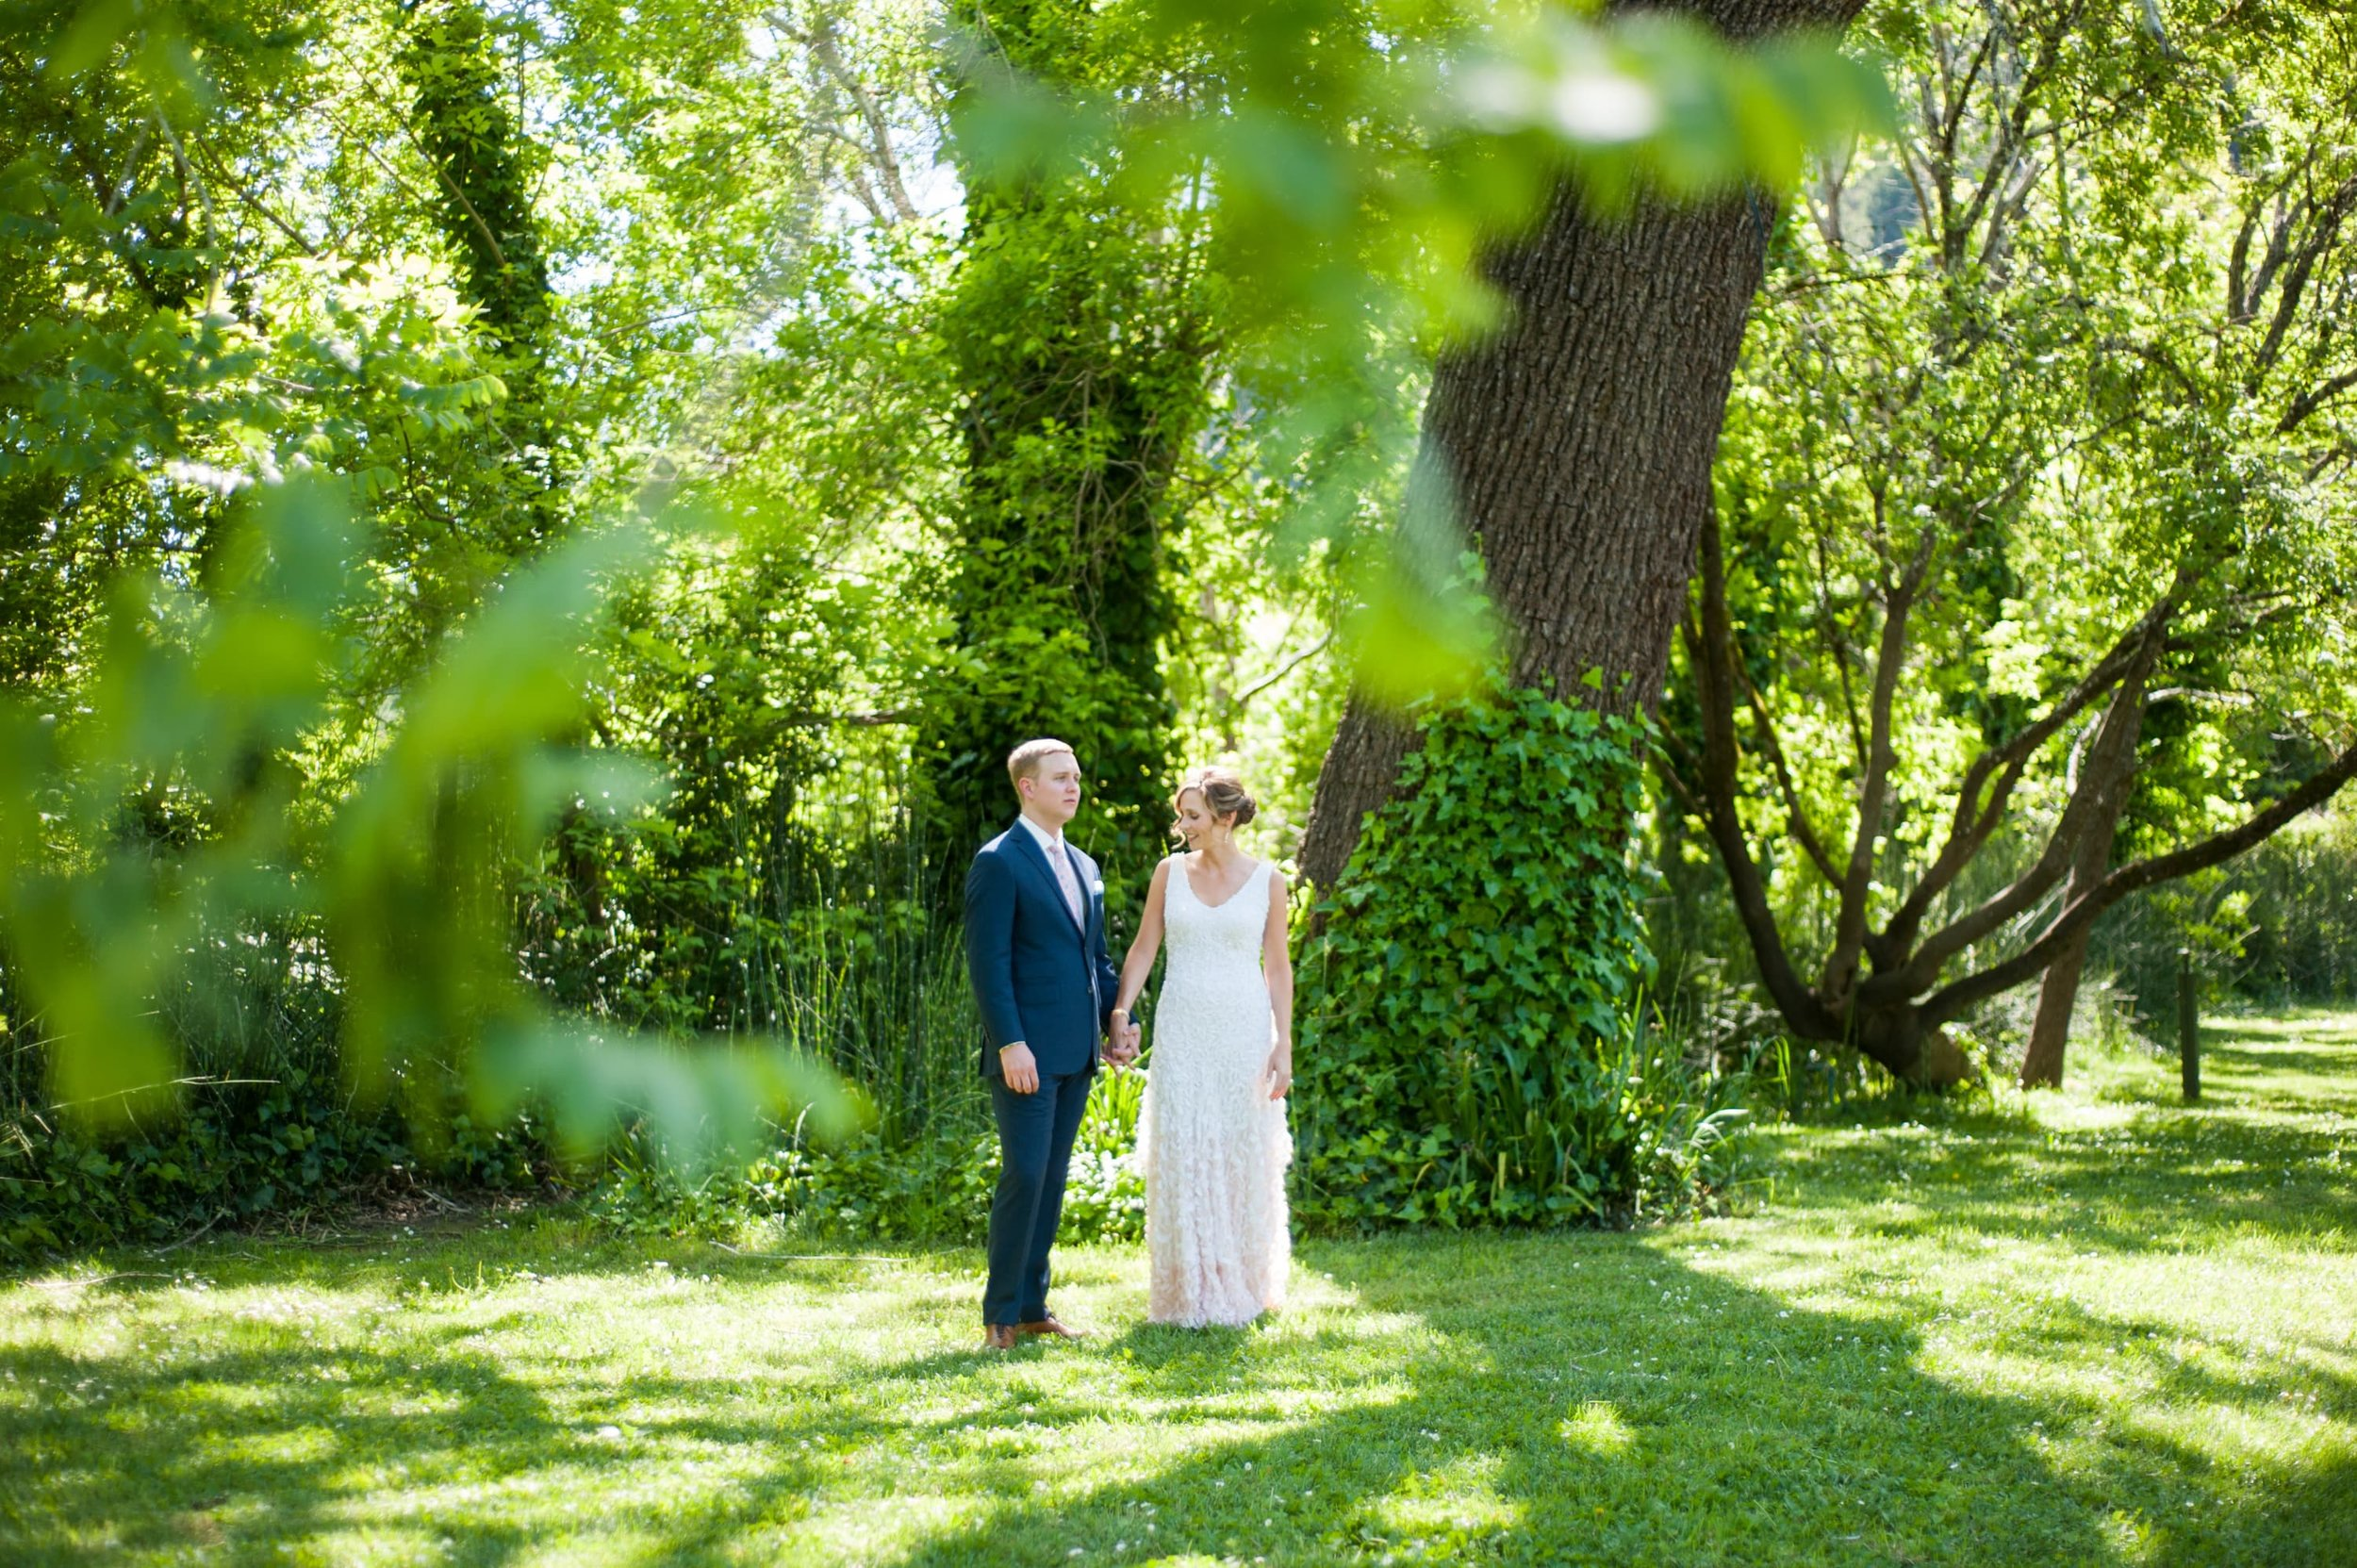 Bride and Groom surrounded by lush greenery in Guerneville